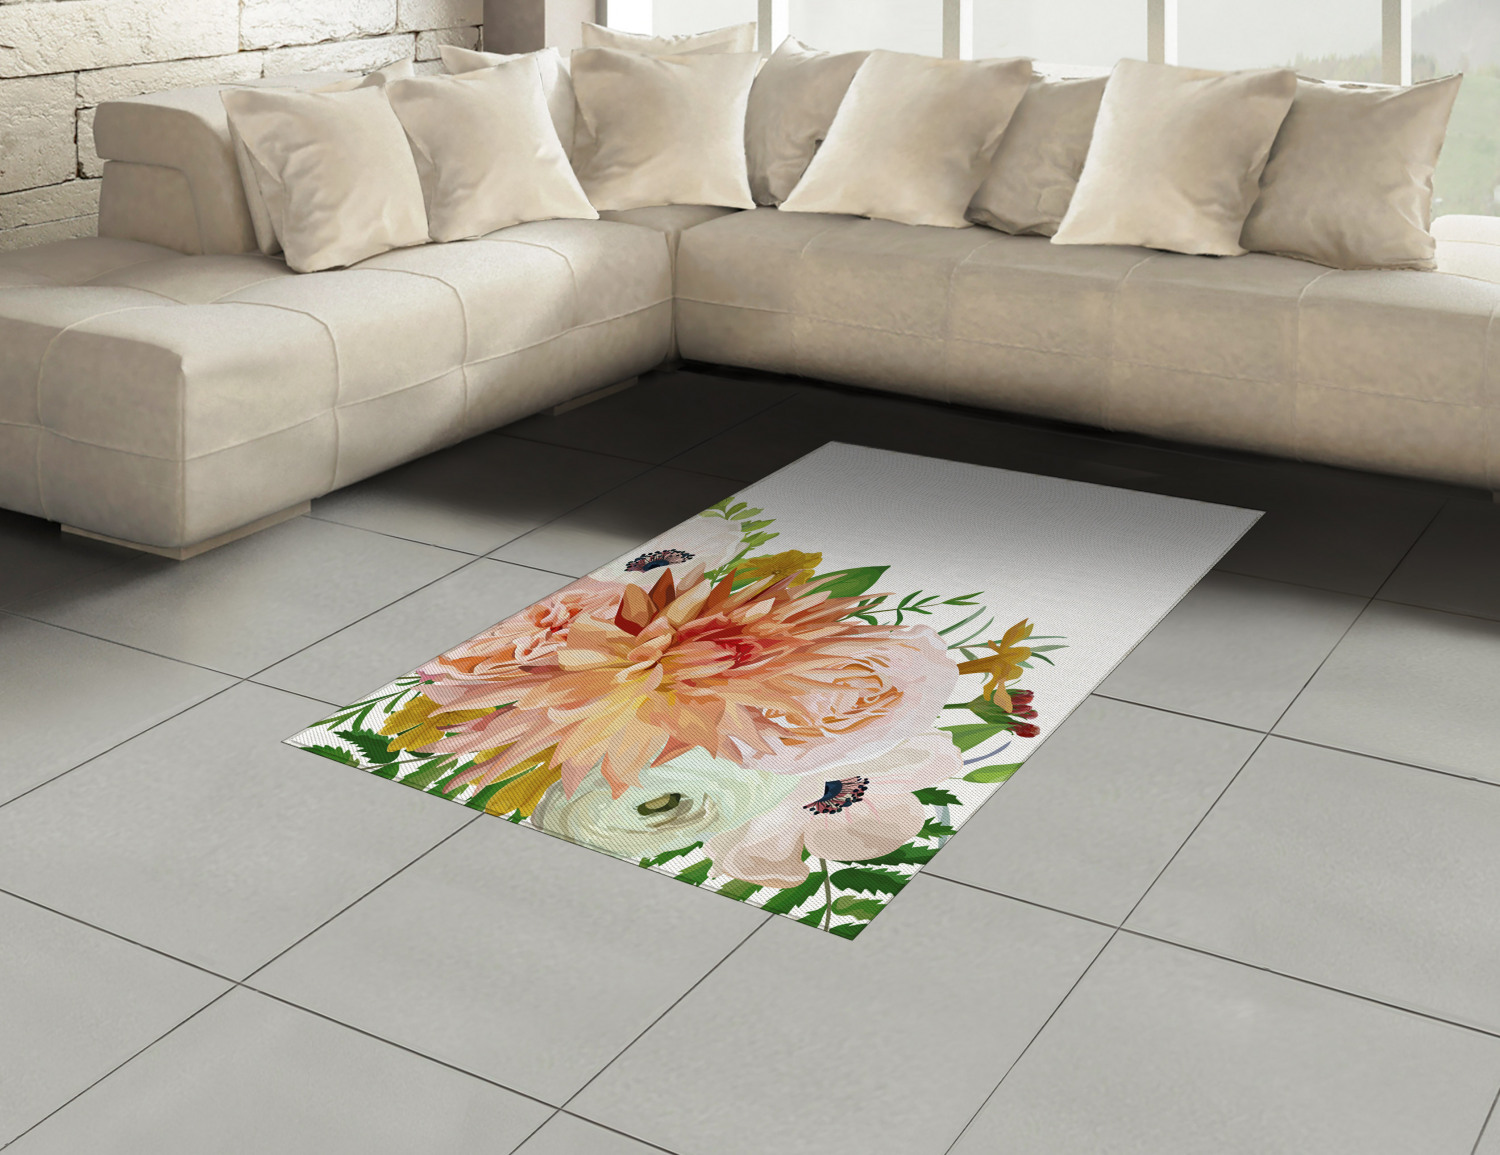 Anemone-Flower-Area-Rug-Decor-Flat-Woven-Accent-Rug-Home-Decor-2-Sizes-Ambesonne thumbnail 26